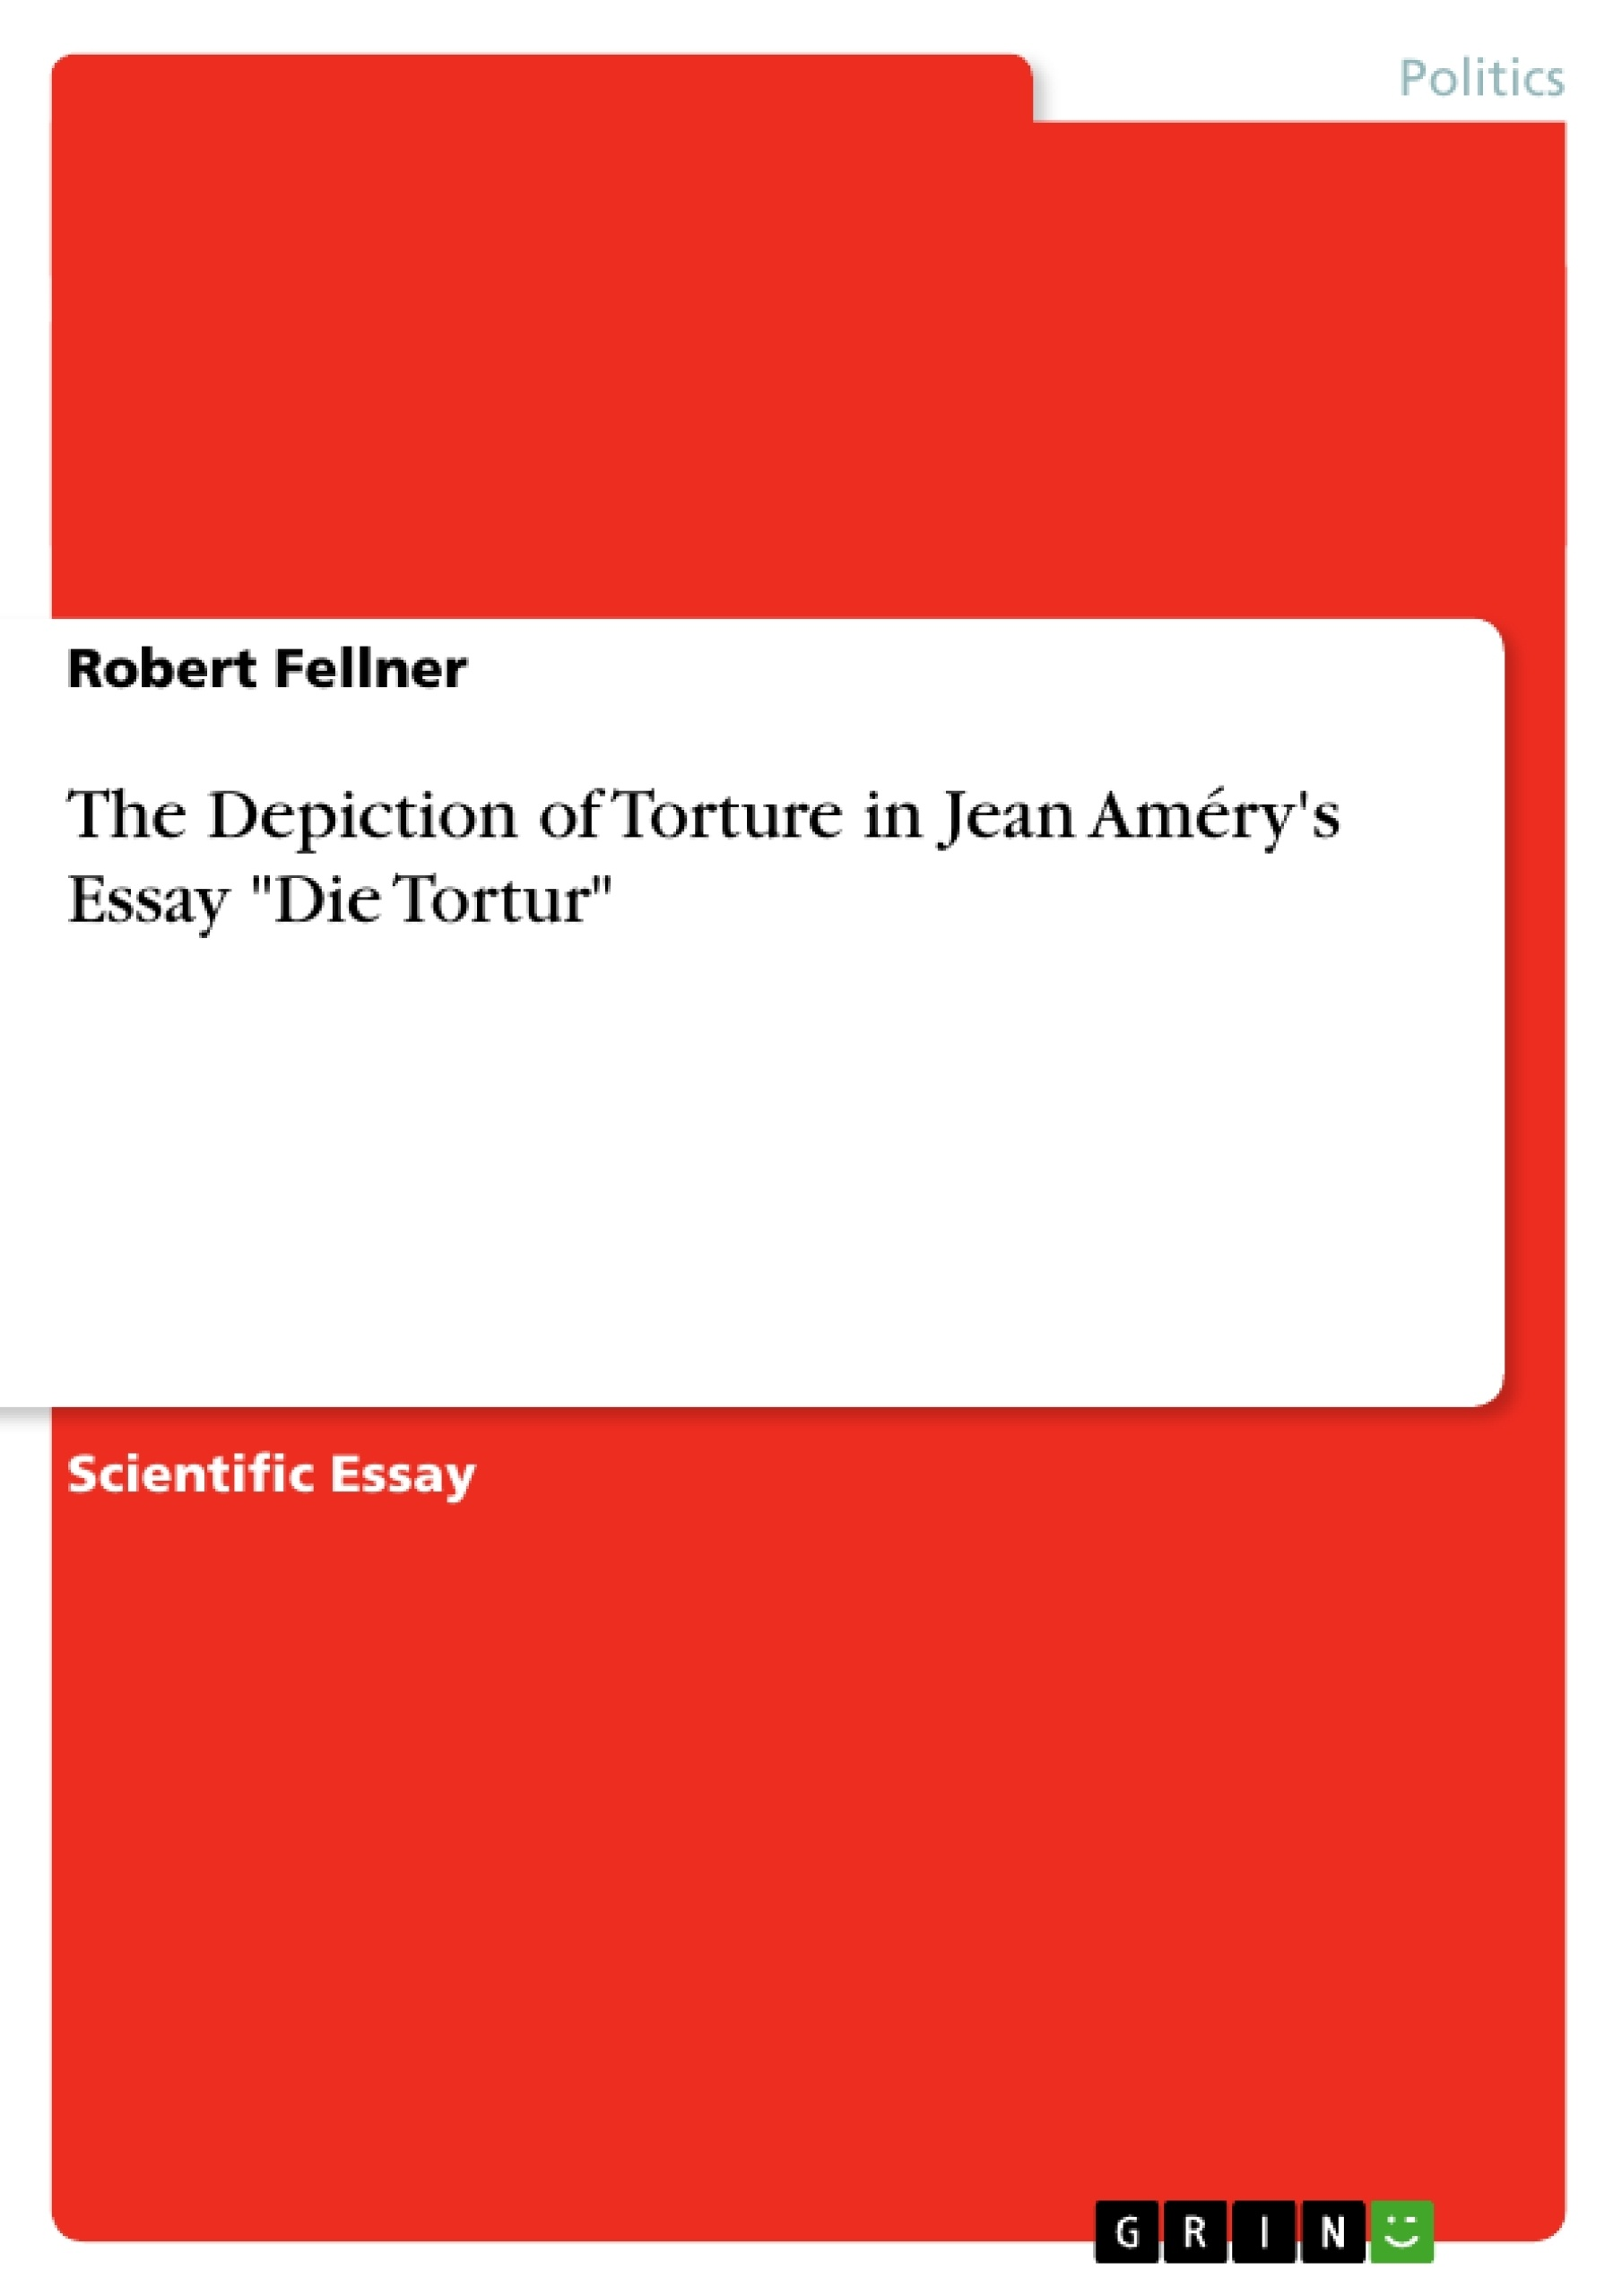 the depiction of torture in jean am eacute ry s essay die tortur the depiction of torture in jean ameacutery s essay die tortur publish your master s thesis bachelor s thesis essay or term paper